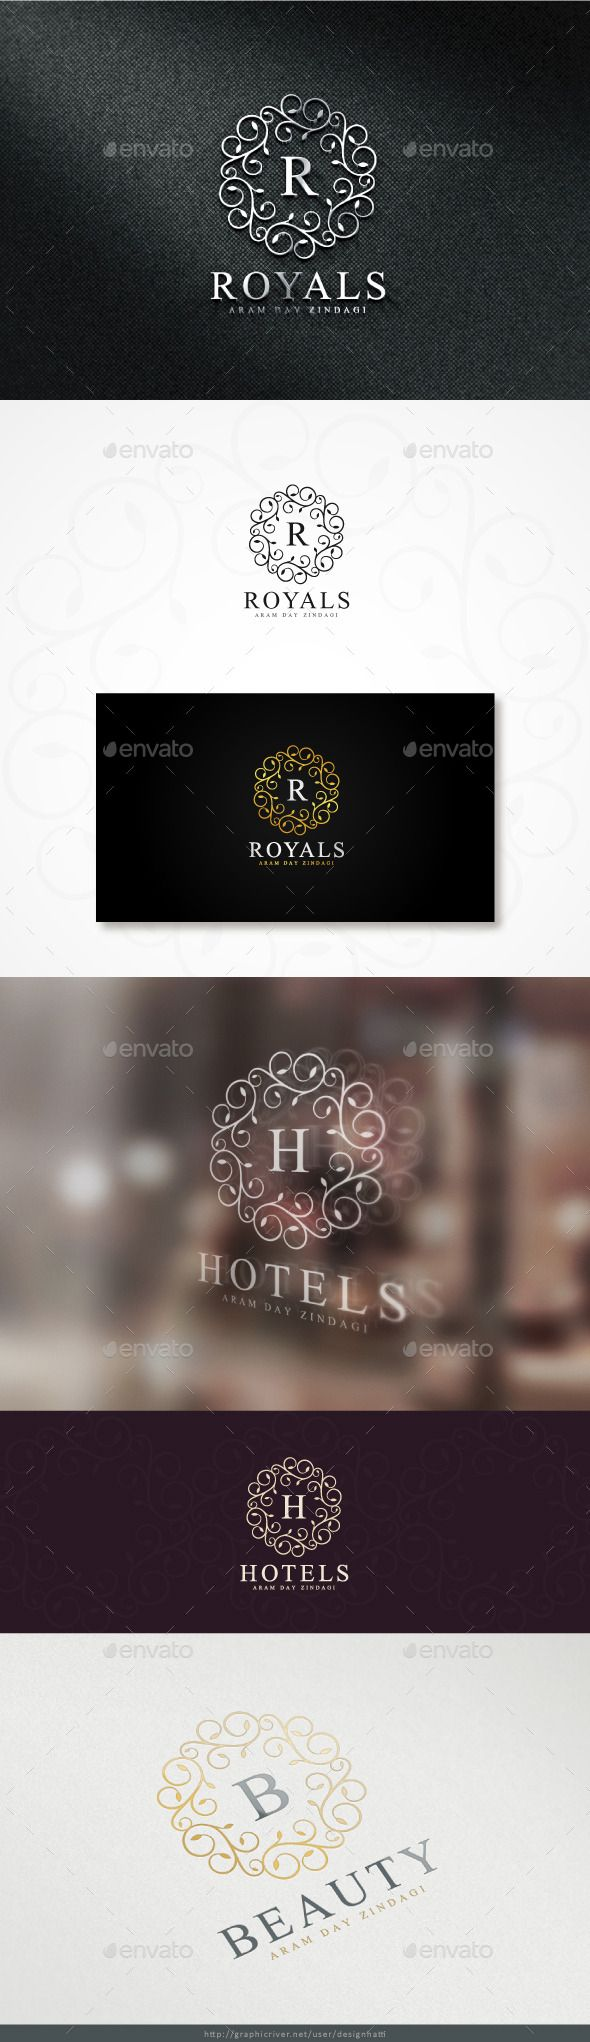 Royals Logo — Photoshop PSD #majestic #luxury logo • Download here → https://graphicriver.net/item/royals-logo/11353795?ref=pxcr